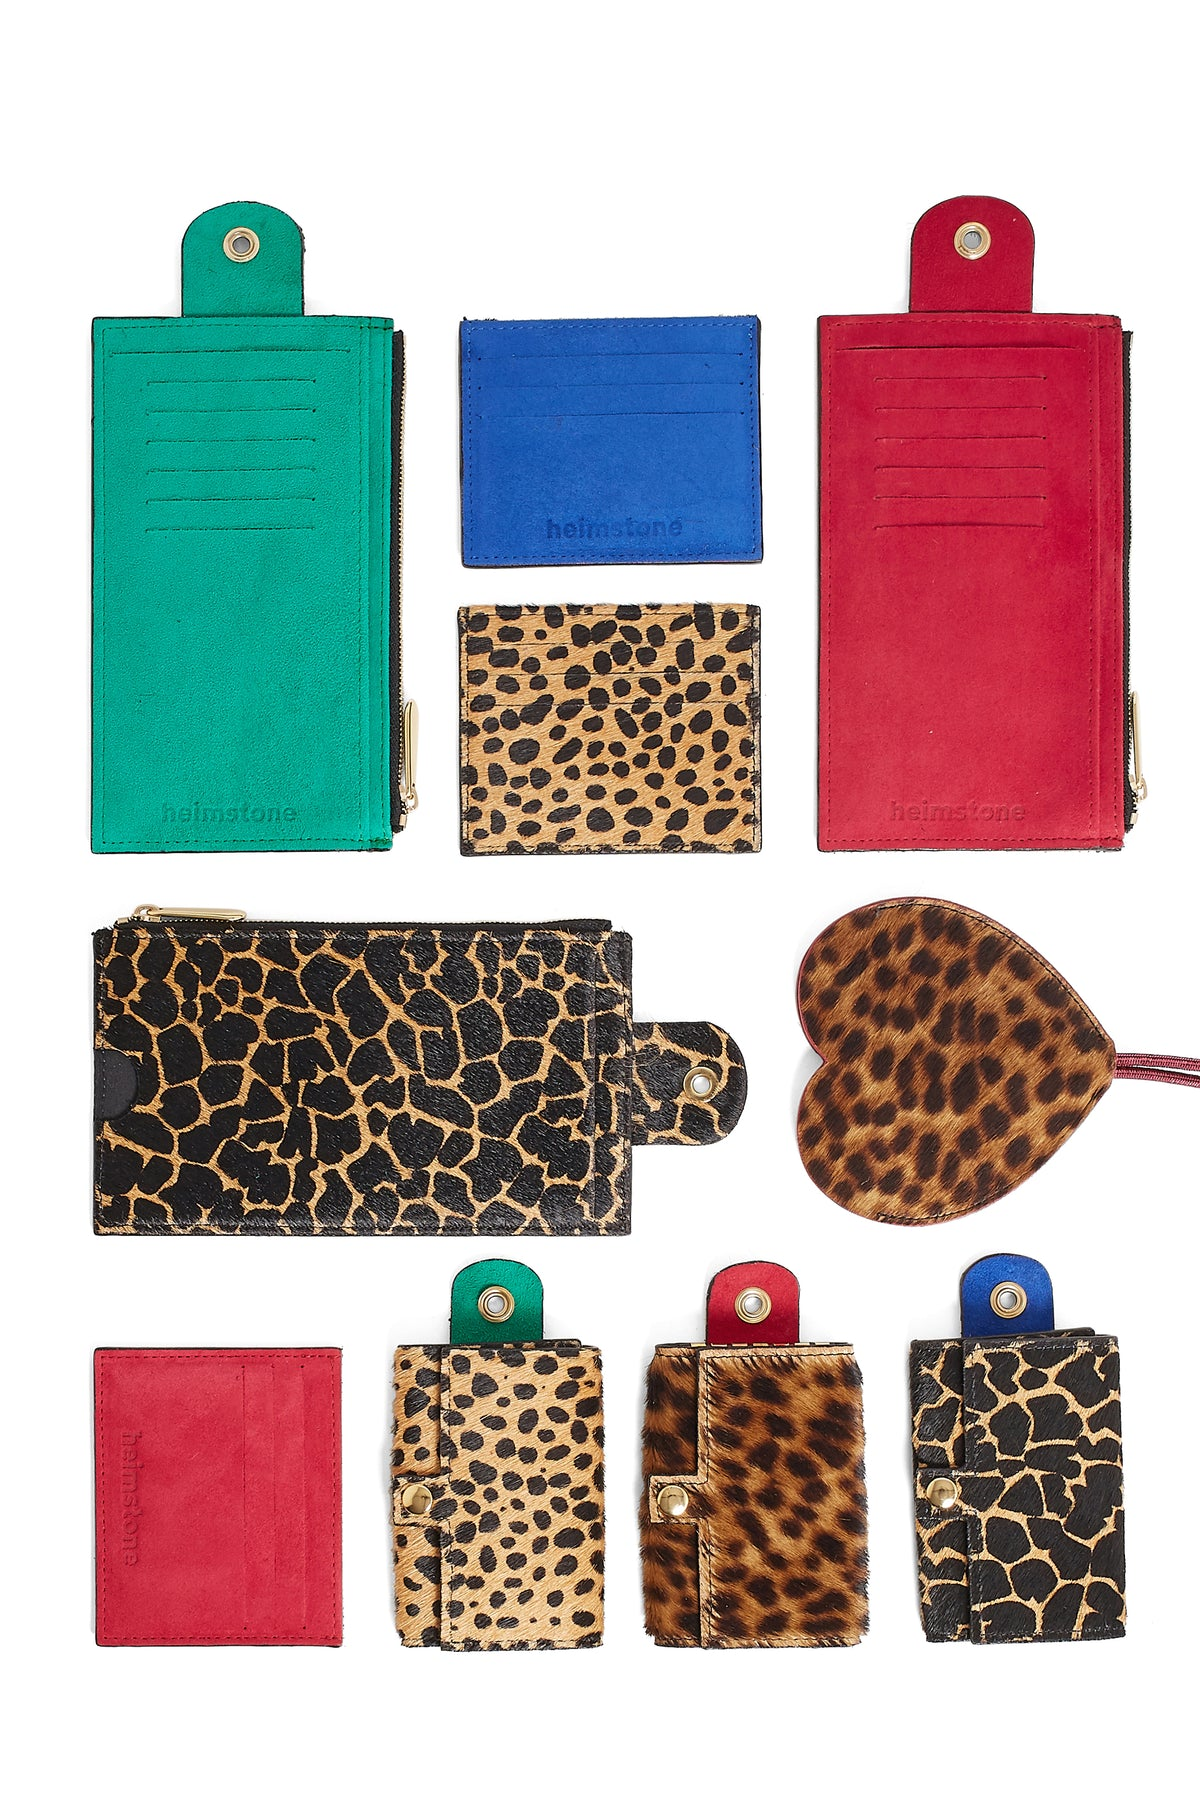 The Minis - 6 Key Holder in Cheetah leather